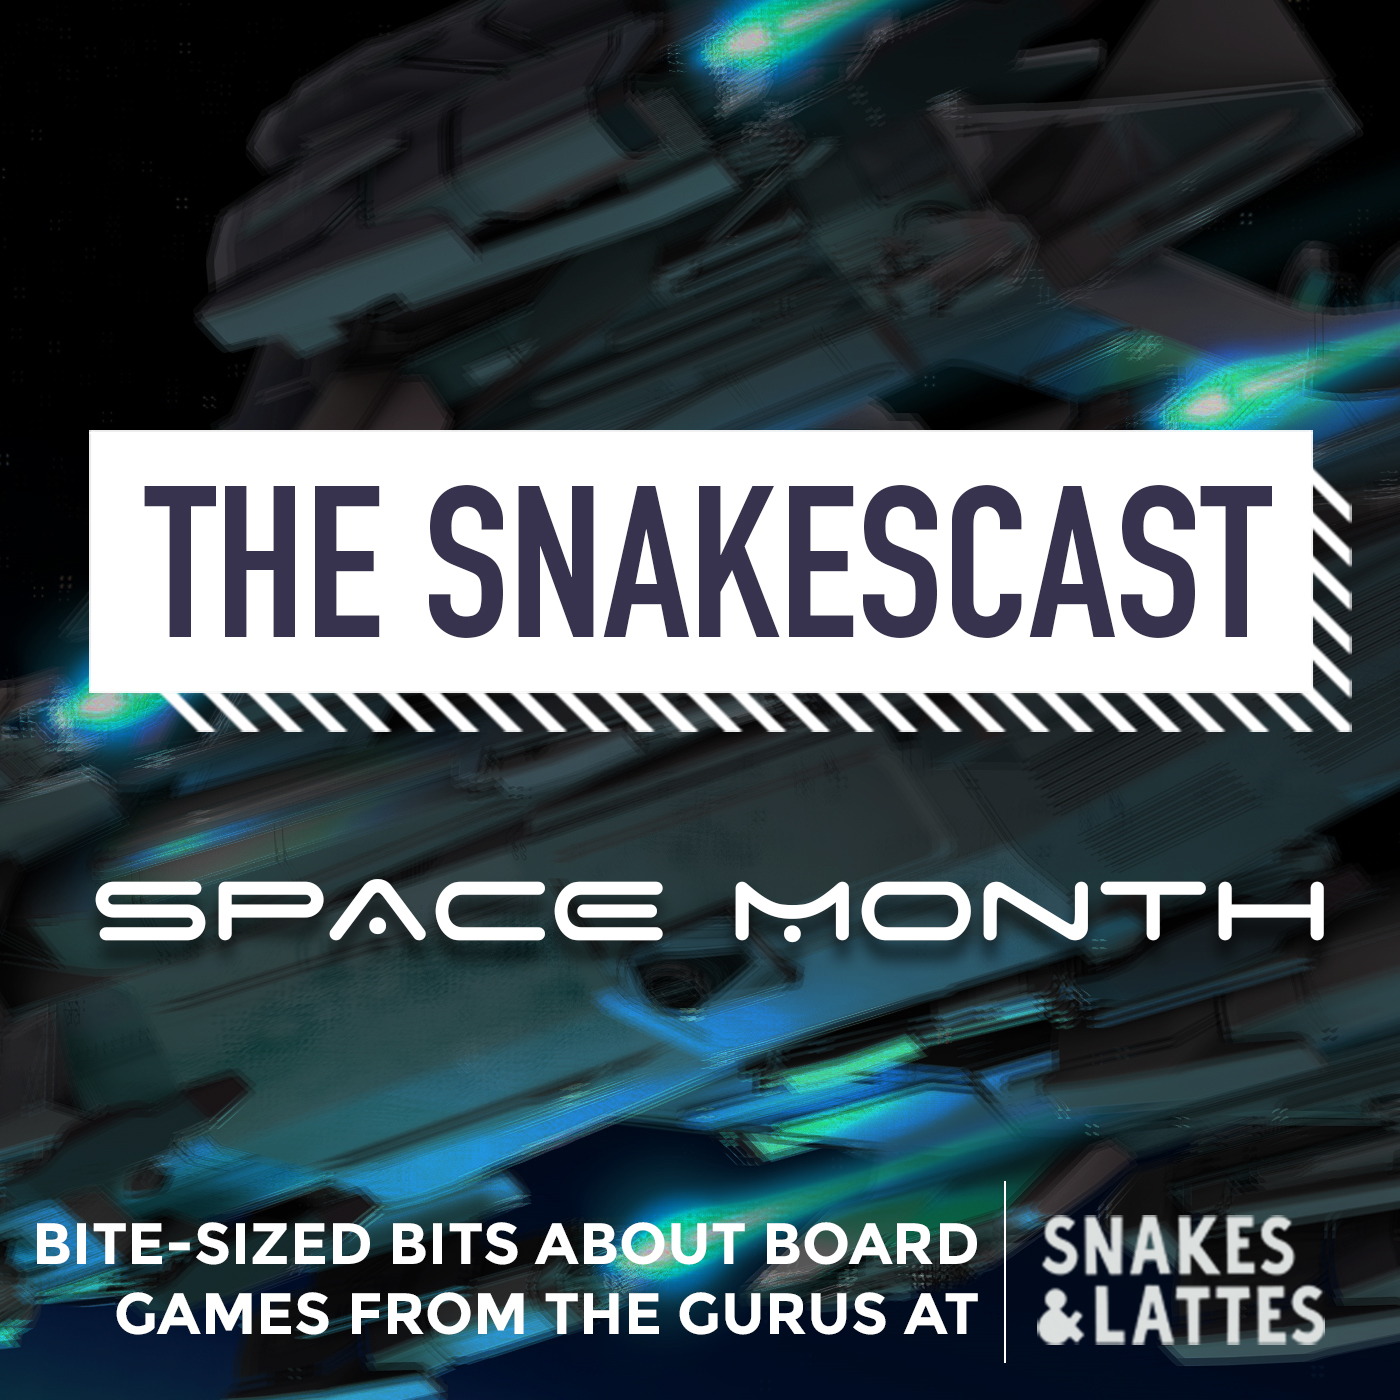 Space Month: Galactic Conquest, Part 3 - Conquering the rest